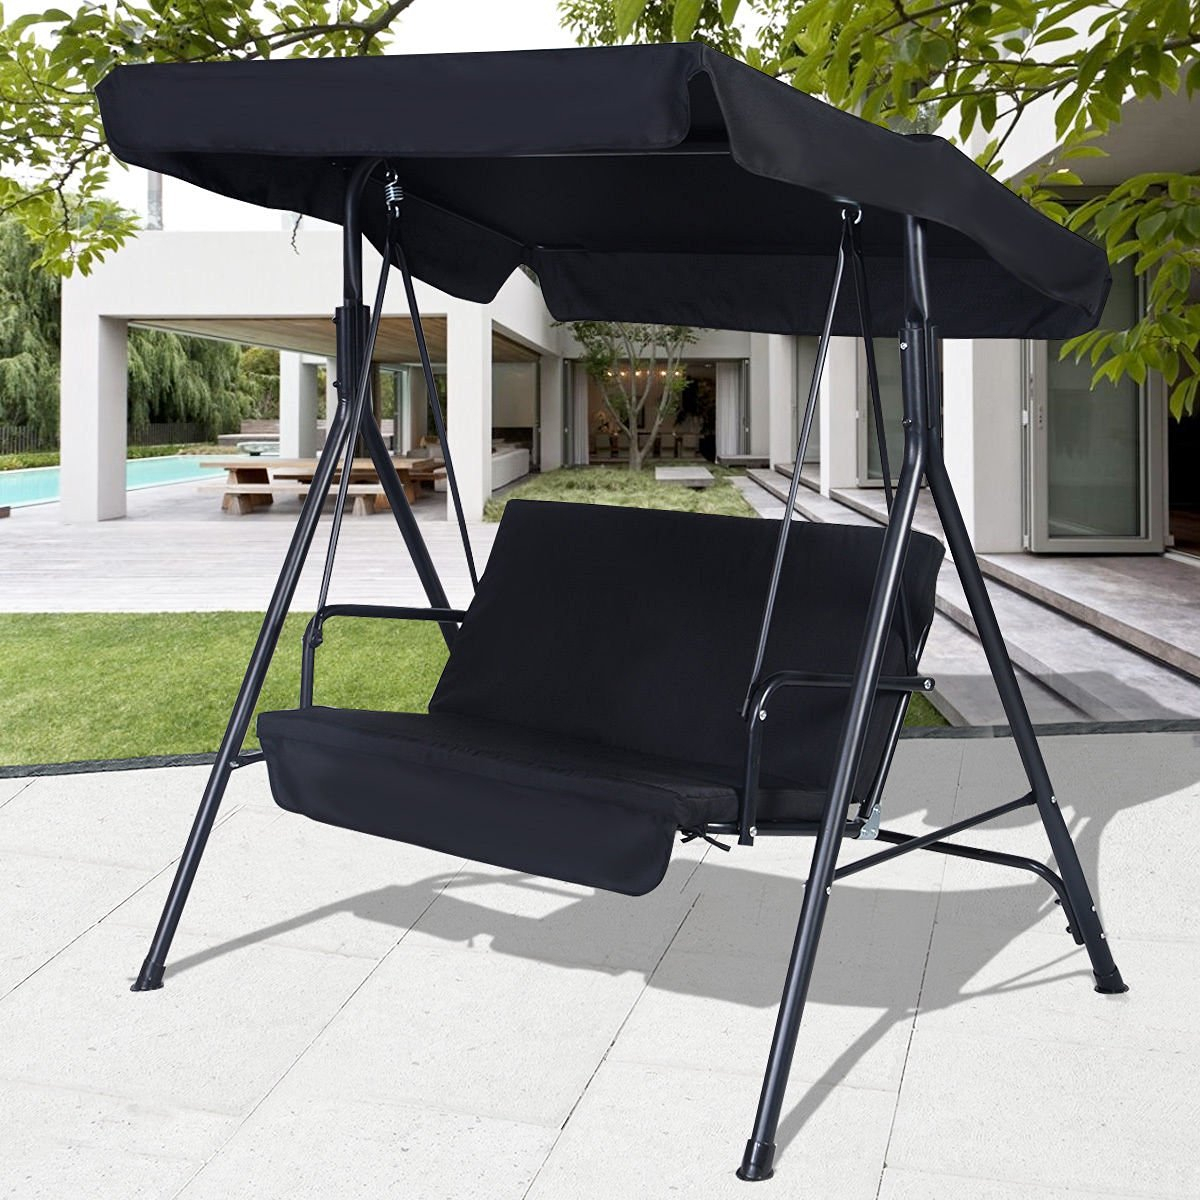 Buy Swings Black Outdoor Patio Swing Canopy Awning Yard Throughout 2 Person Black Steel Outdoor Swings (Image 7 of 25)